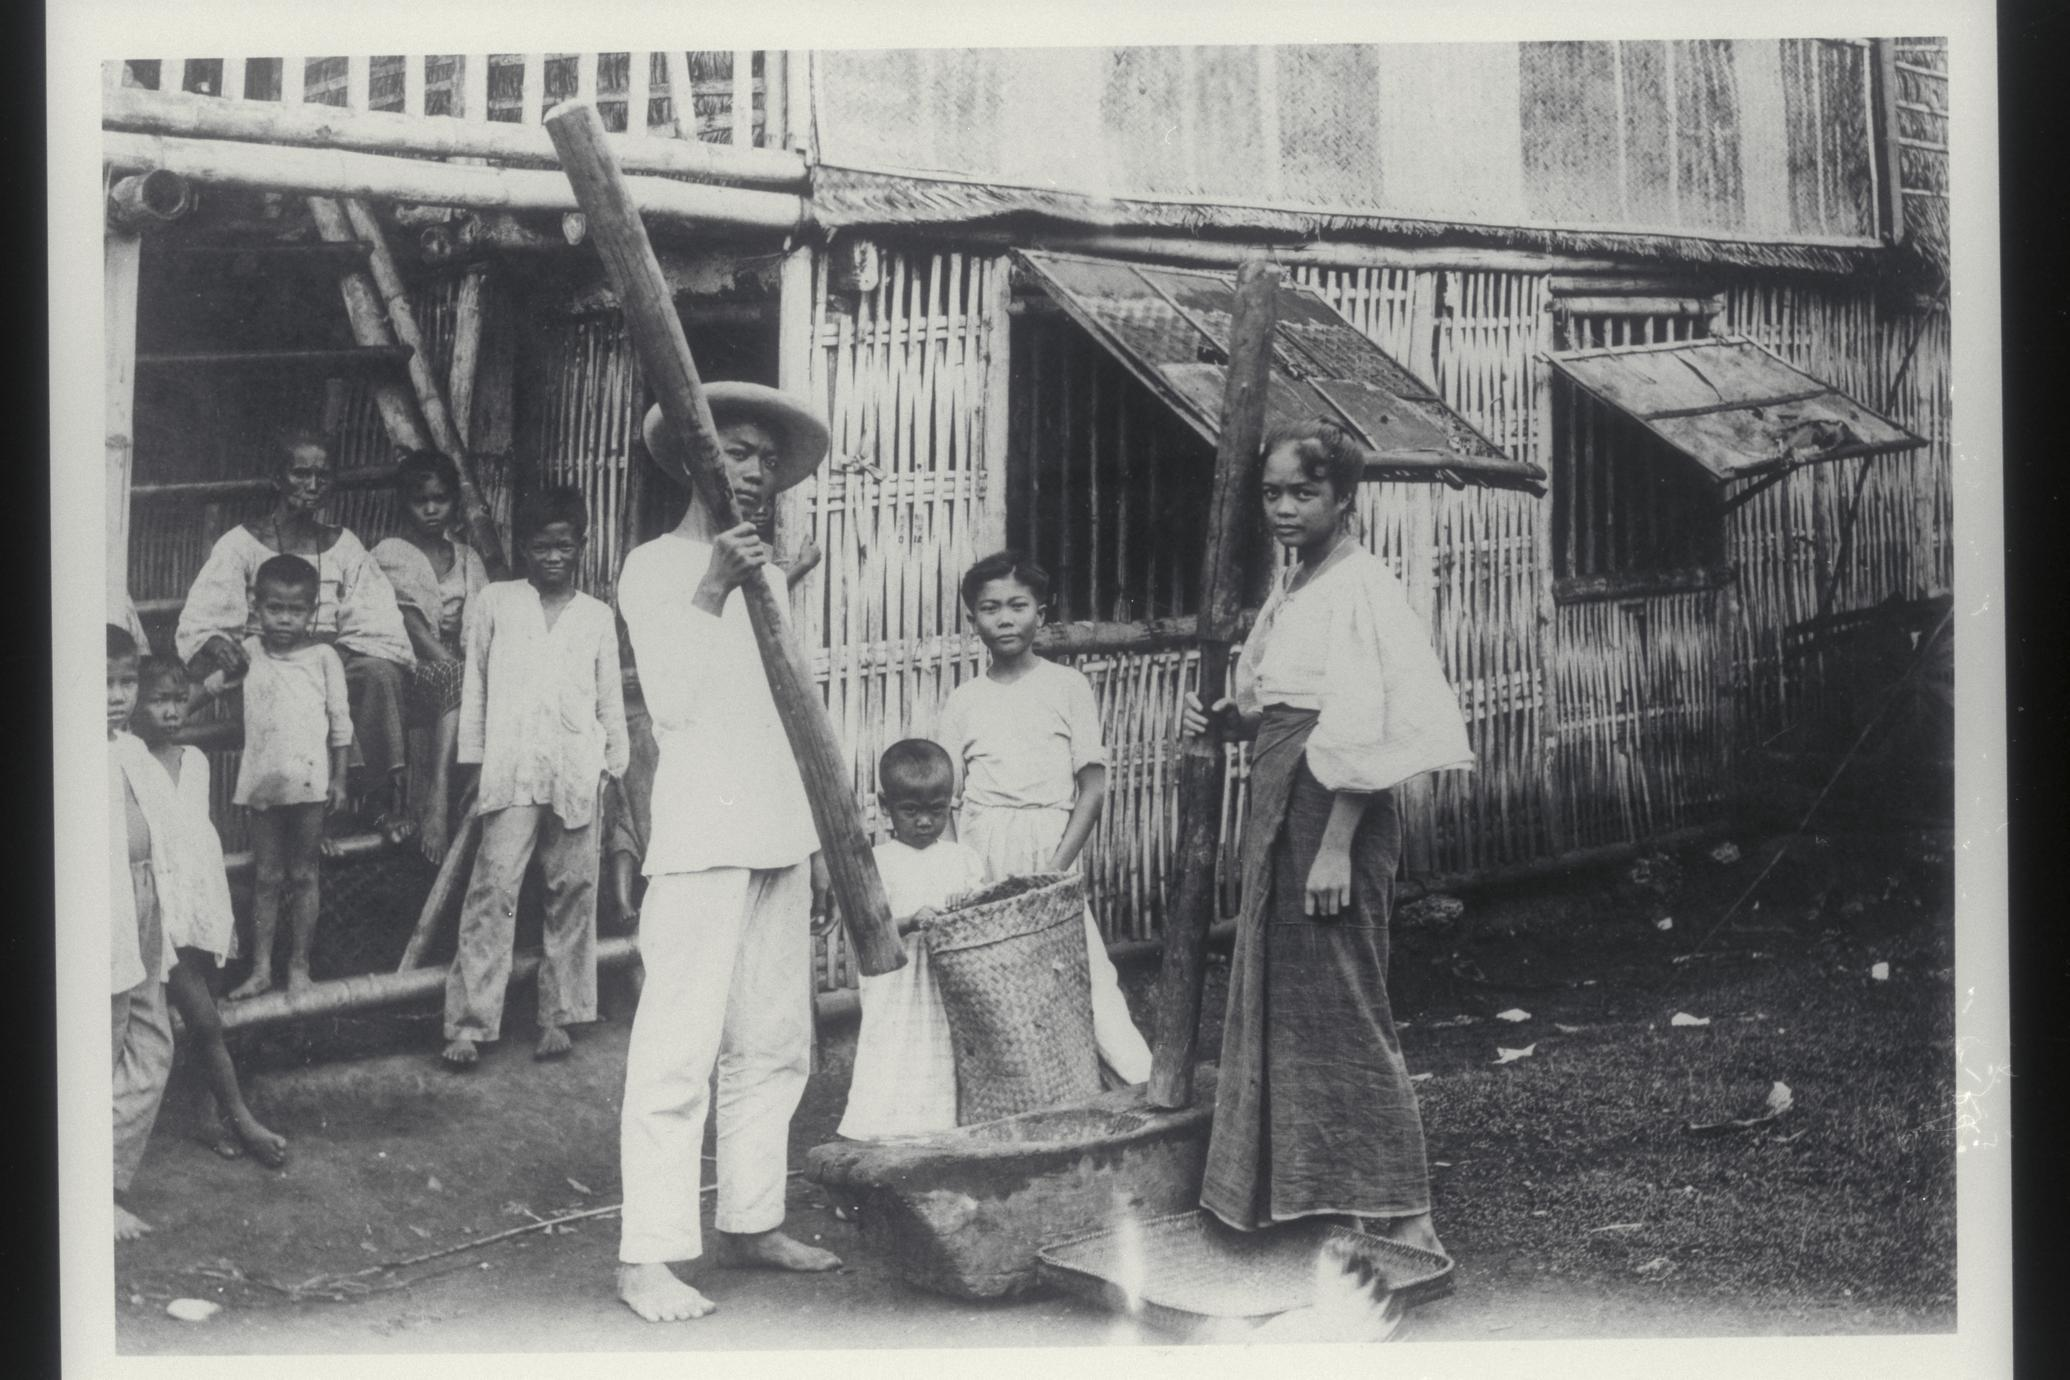 Shelling rice with hand implements, 1920s